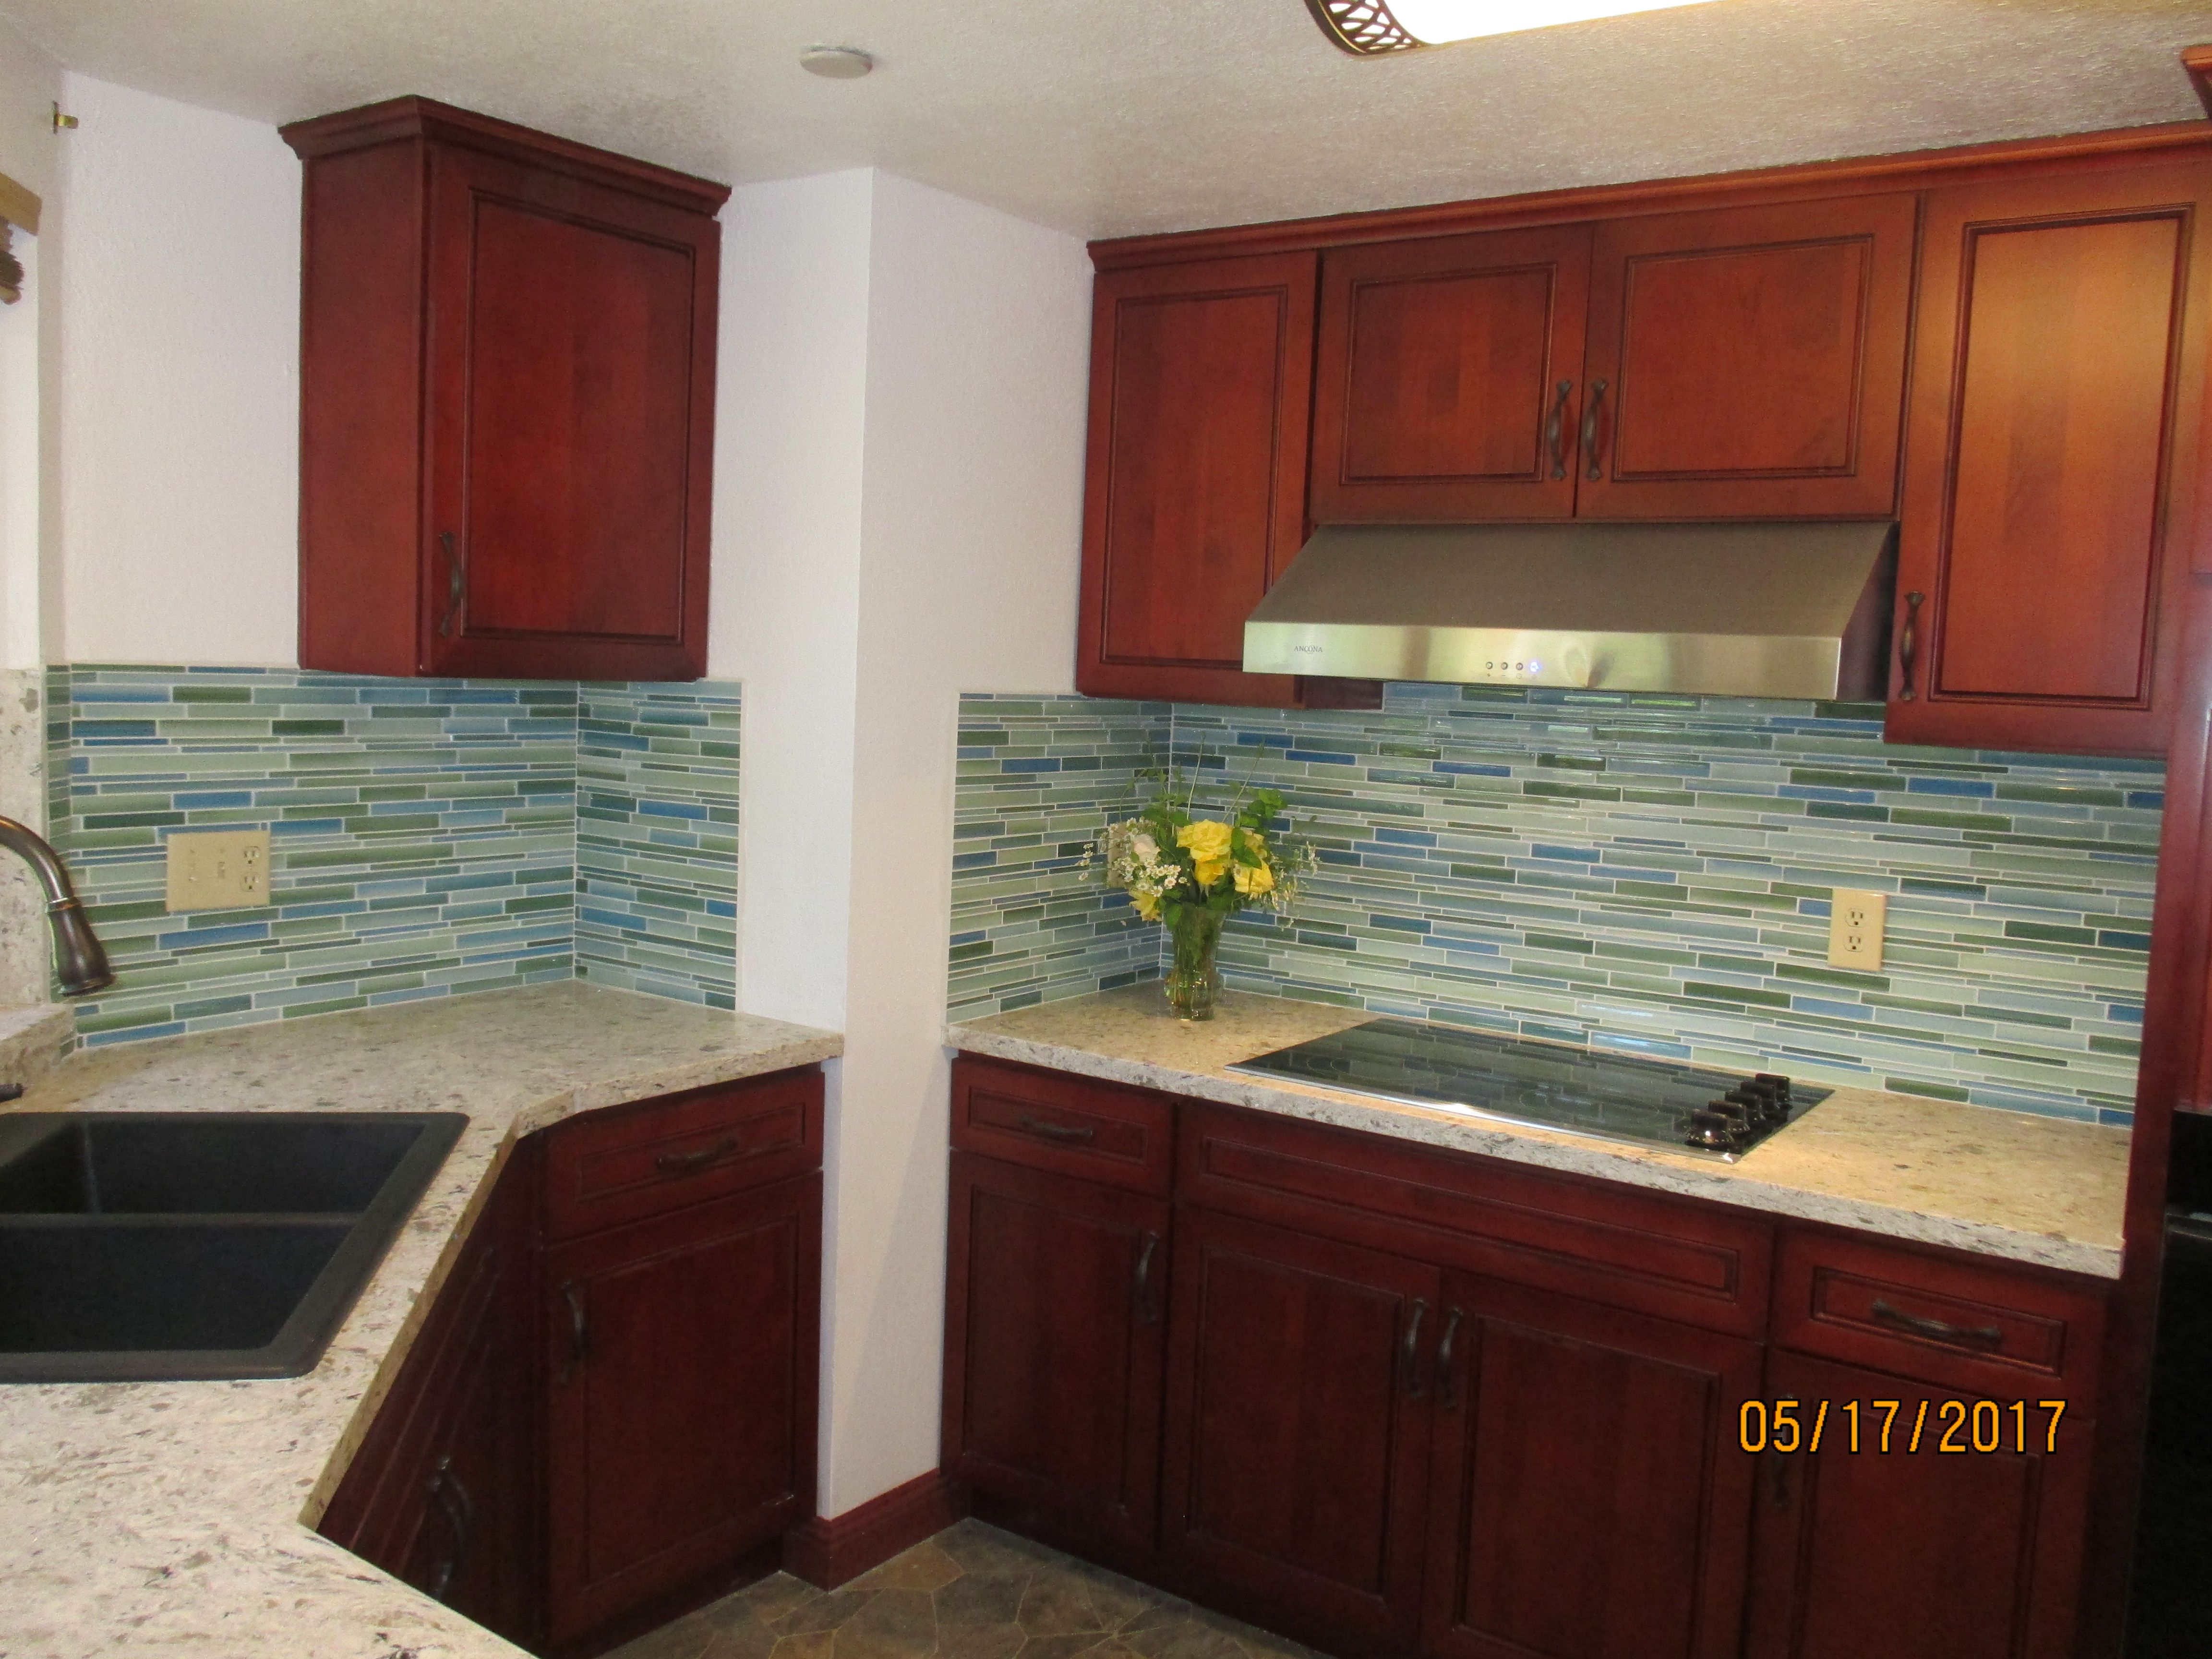 Curl linear glass mosaic tiles This Caribbean color bination of greens and blues brings a warm inviting feeling to a kitchen backsplash or bathroom